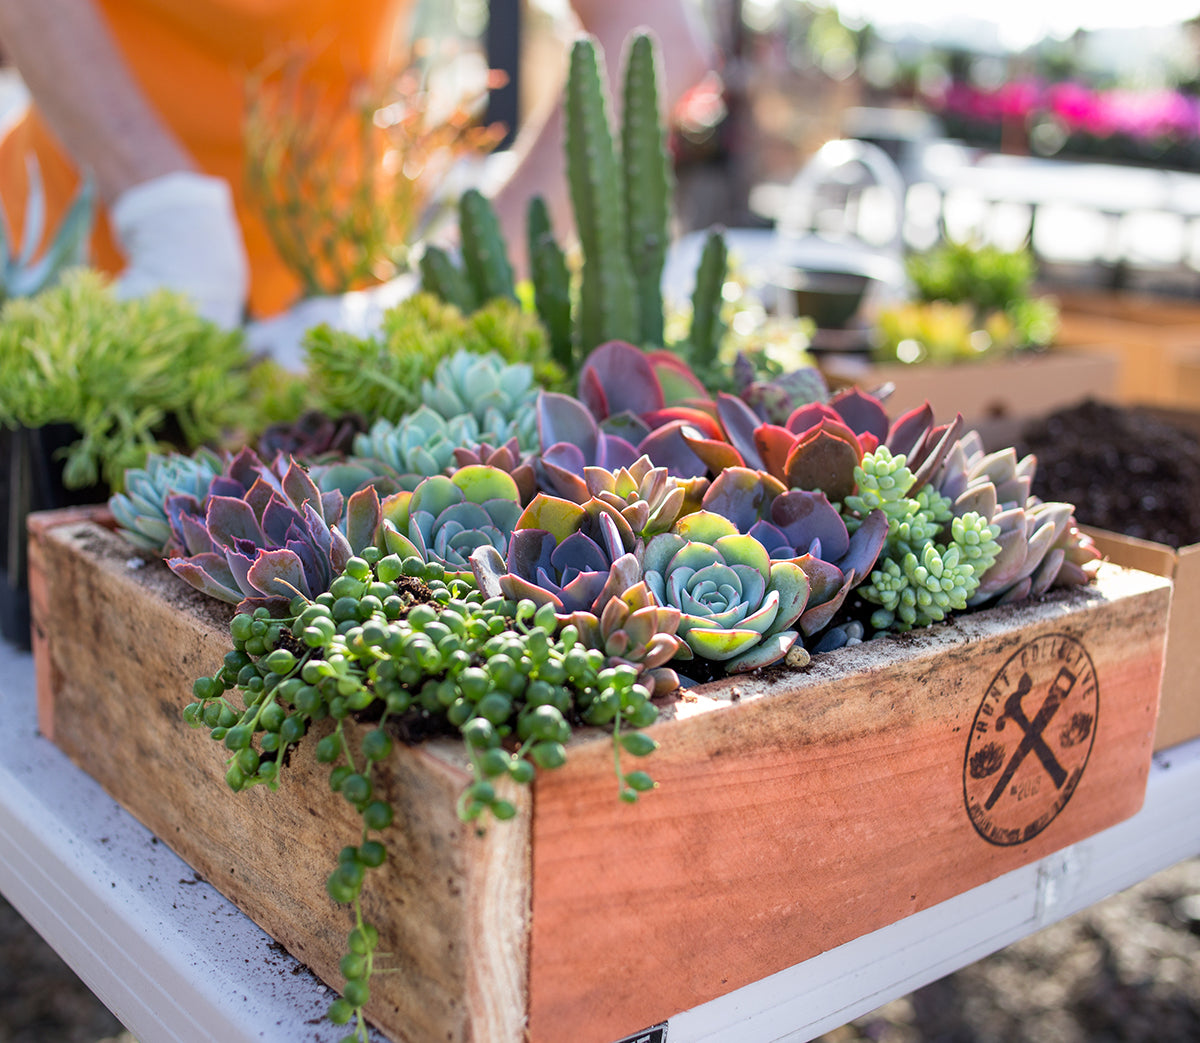 Botanical Bright - Succulent Workshop at Weidners Nursery with Mike Pyle